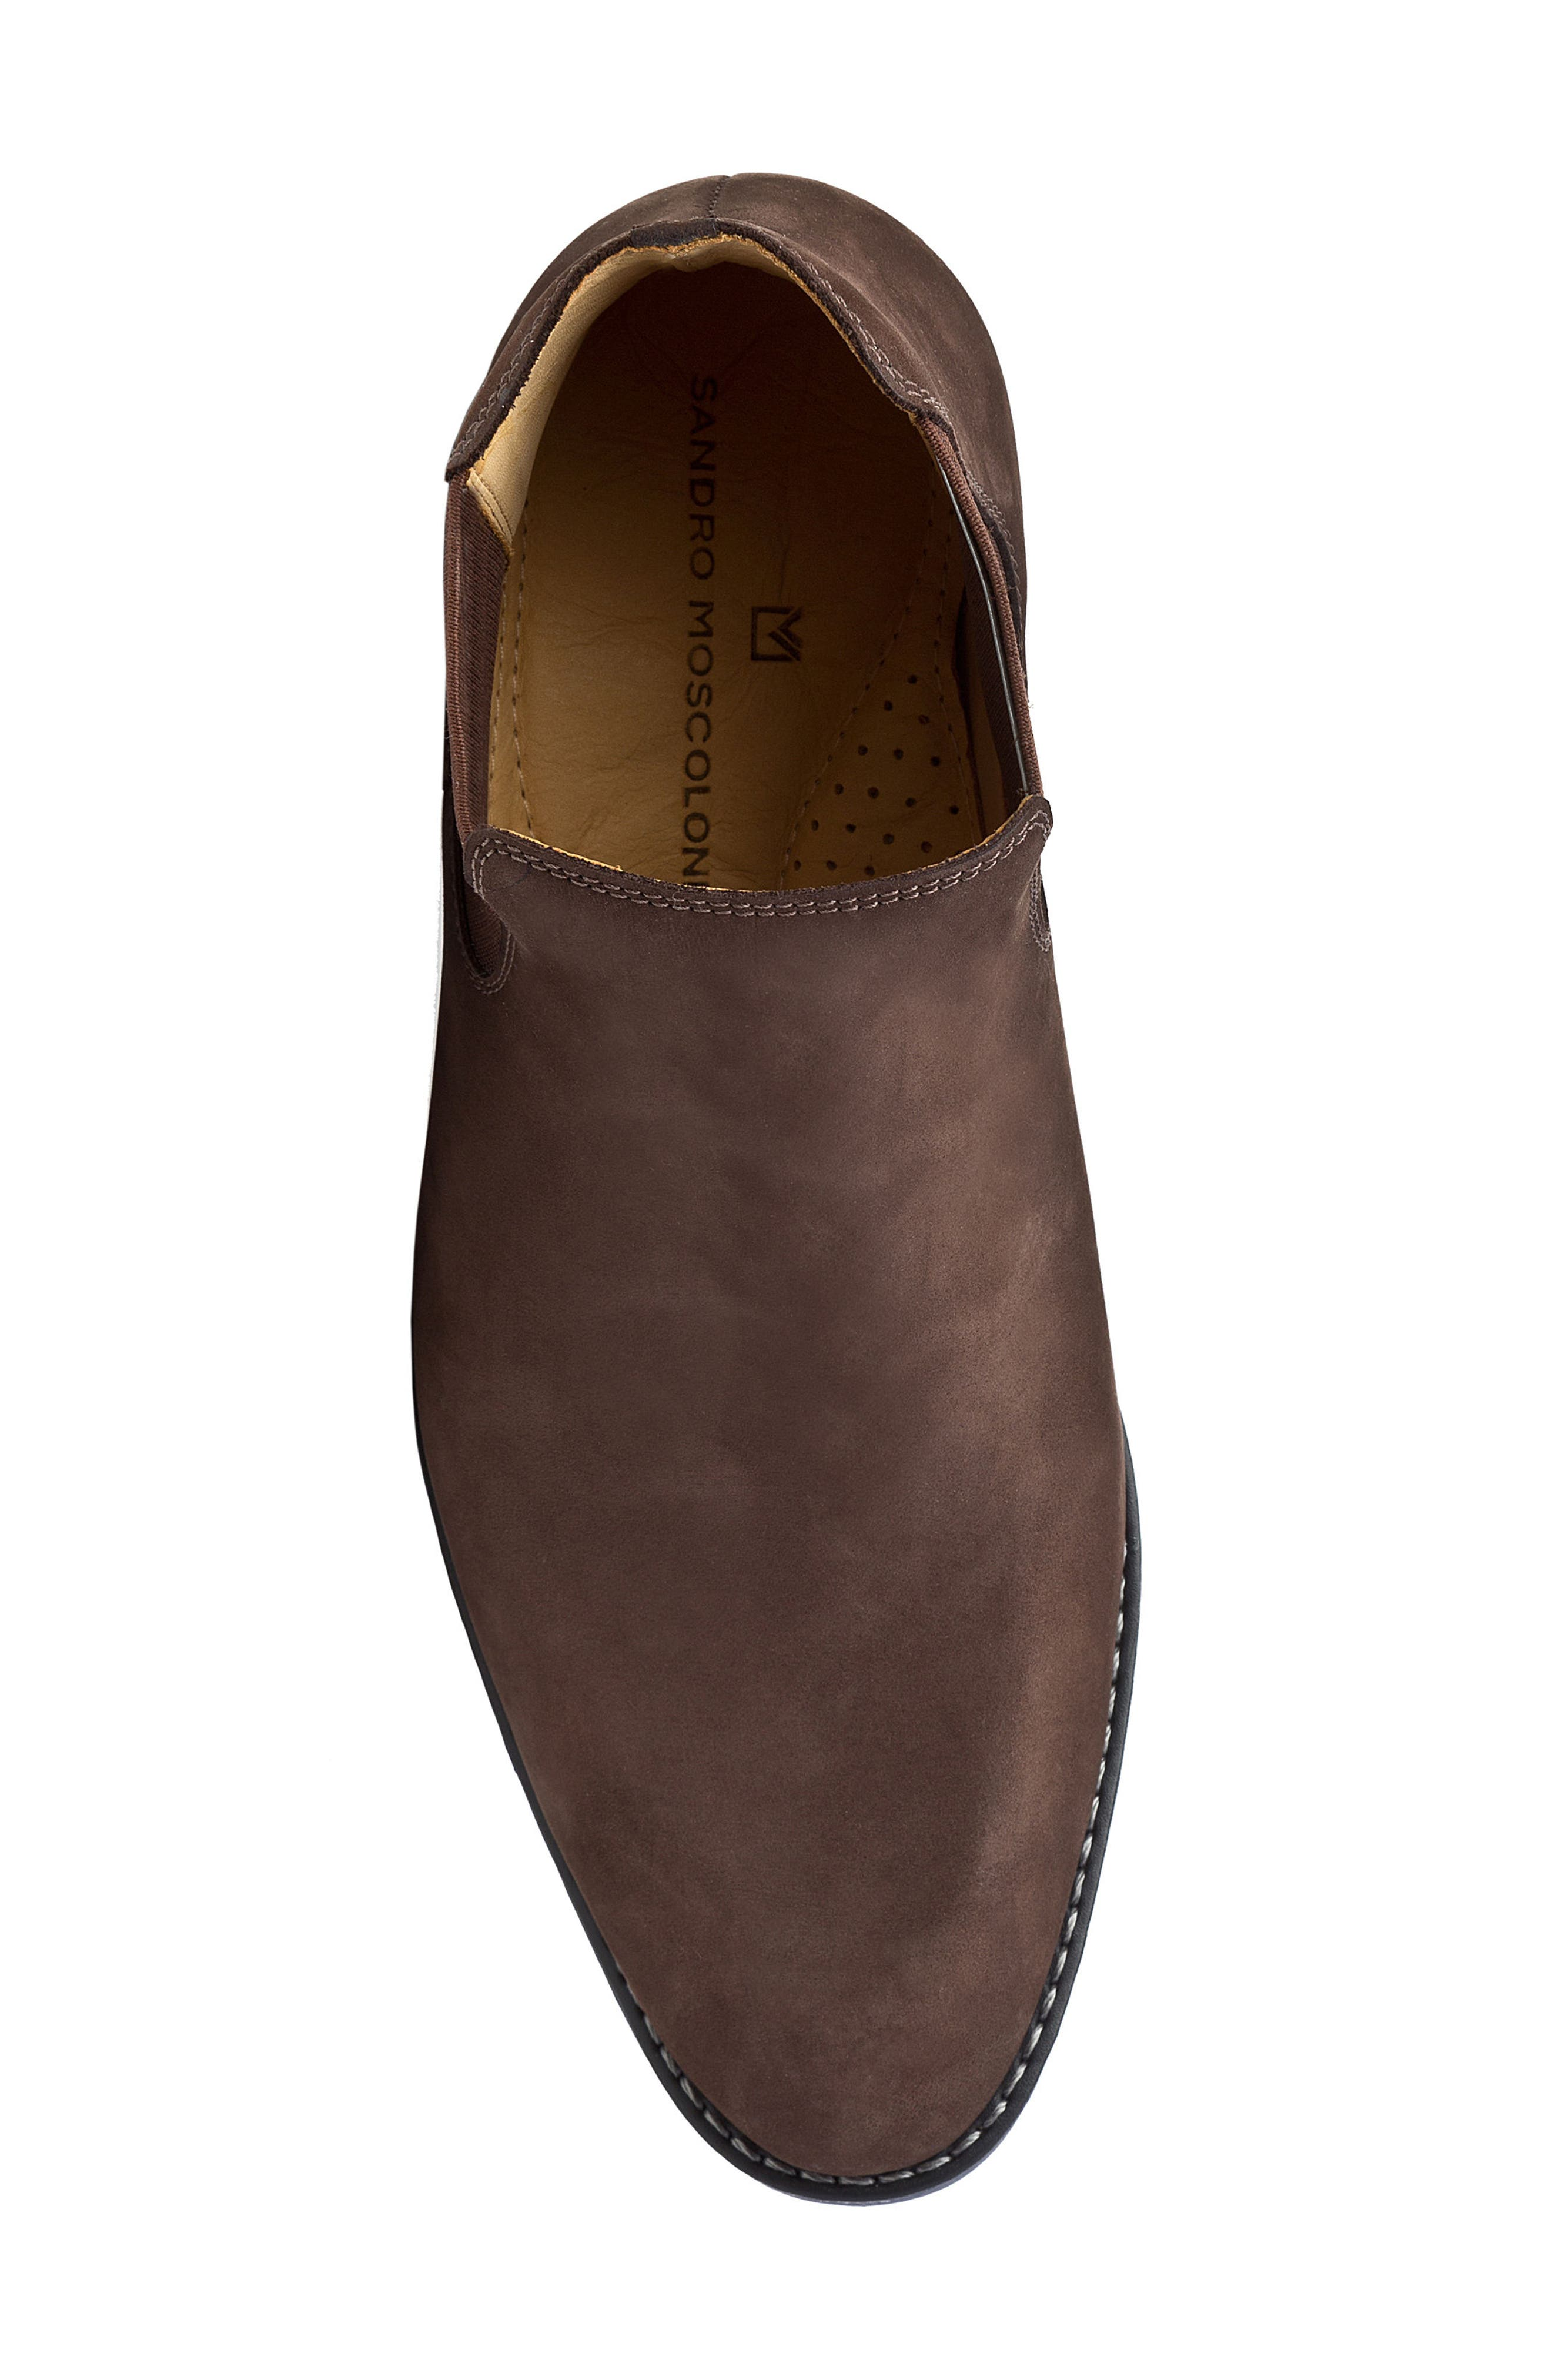 Marcus Chelsea Boot,                             Alternate thumbnail 5, color,                             Brown Nubuck Leather